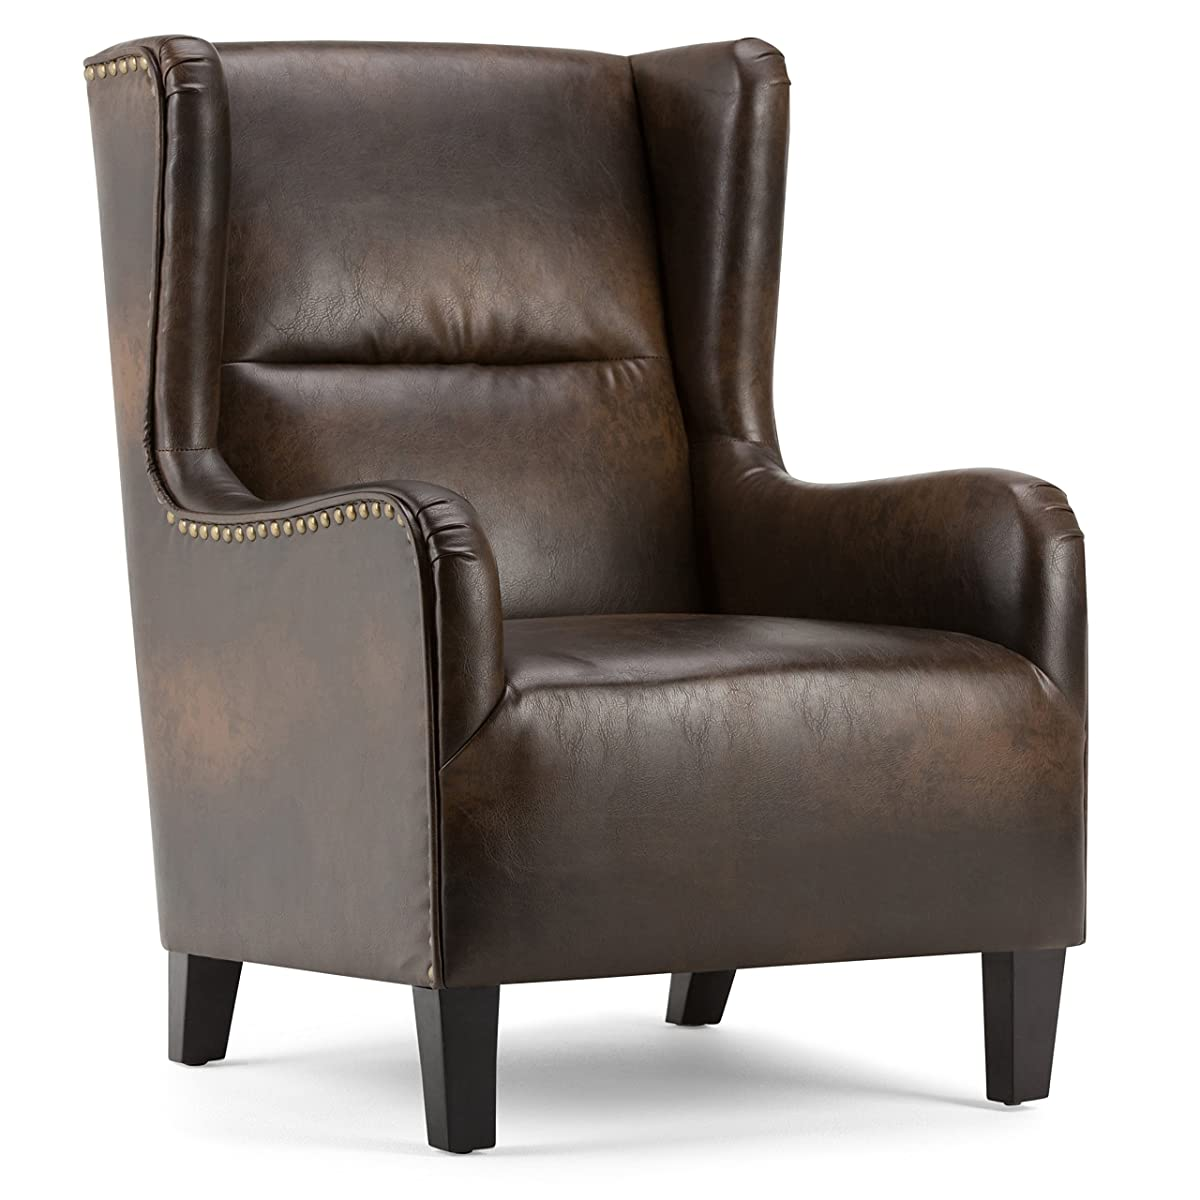 Simpli Home Taylor Wingback Chair, Distressed Brown